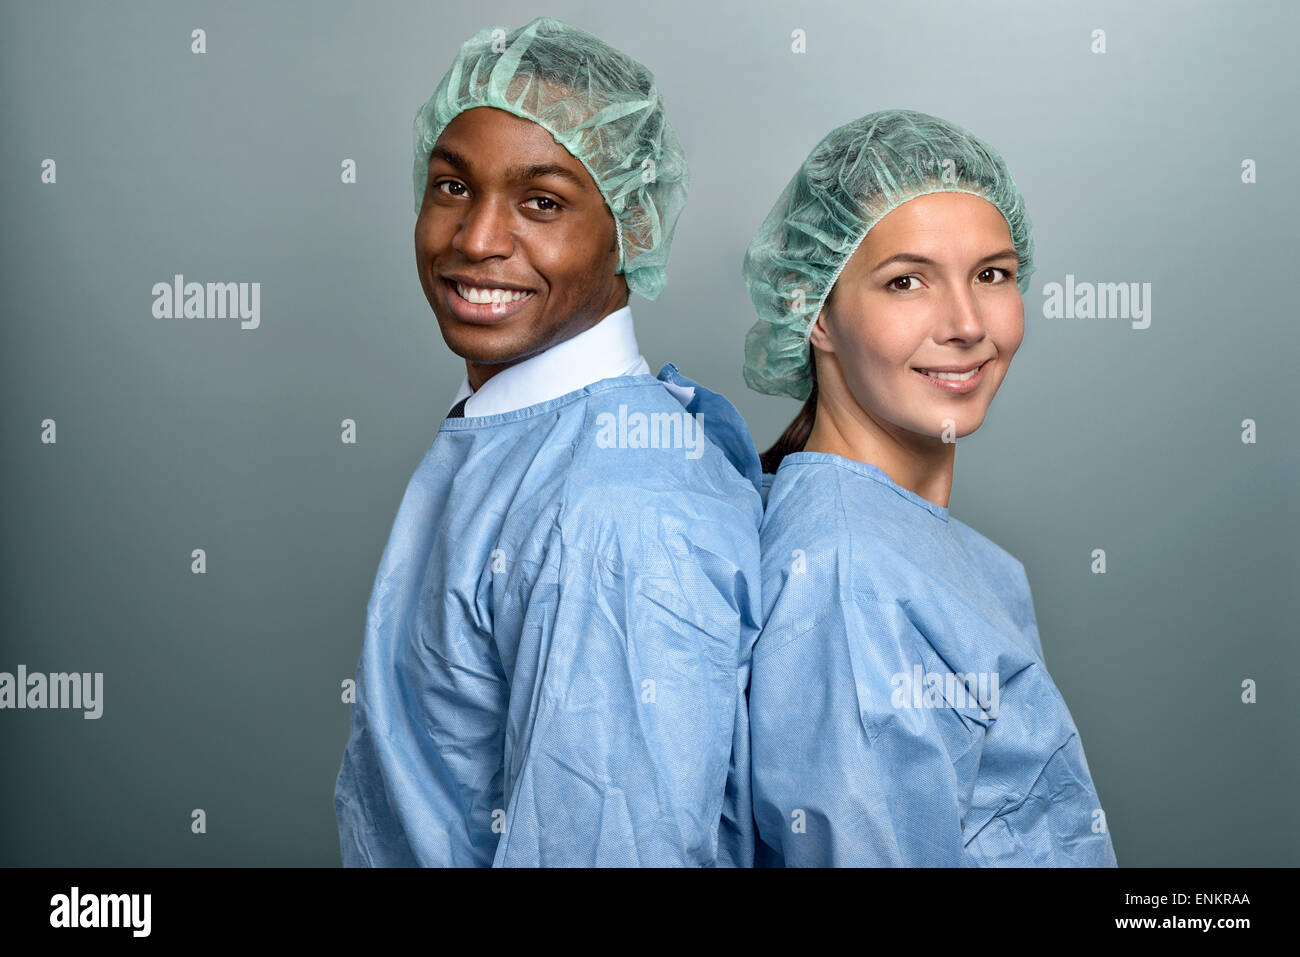 Handsome young African doctor or male nurse in scrubs and a sterility cap looking directly at the camera over a - Stock Image